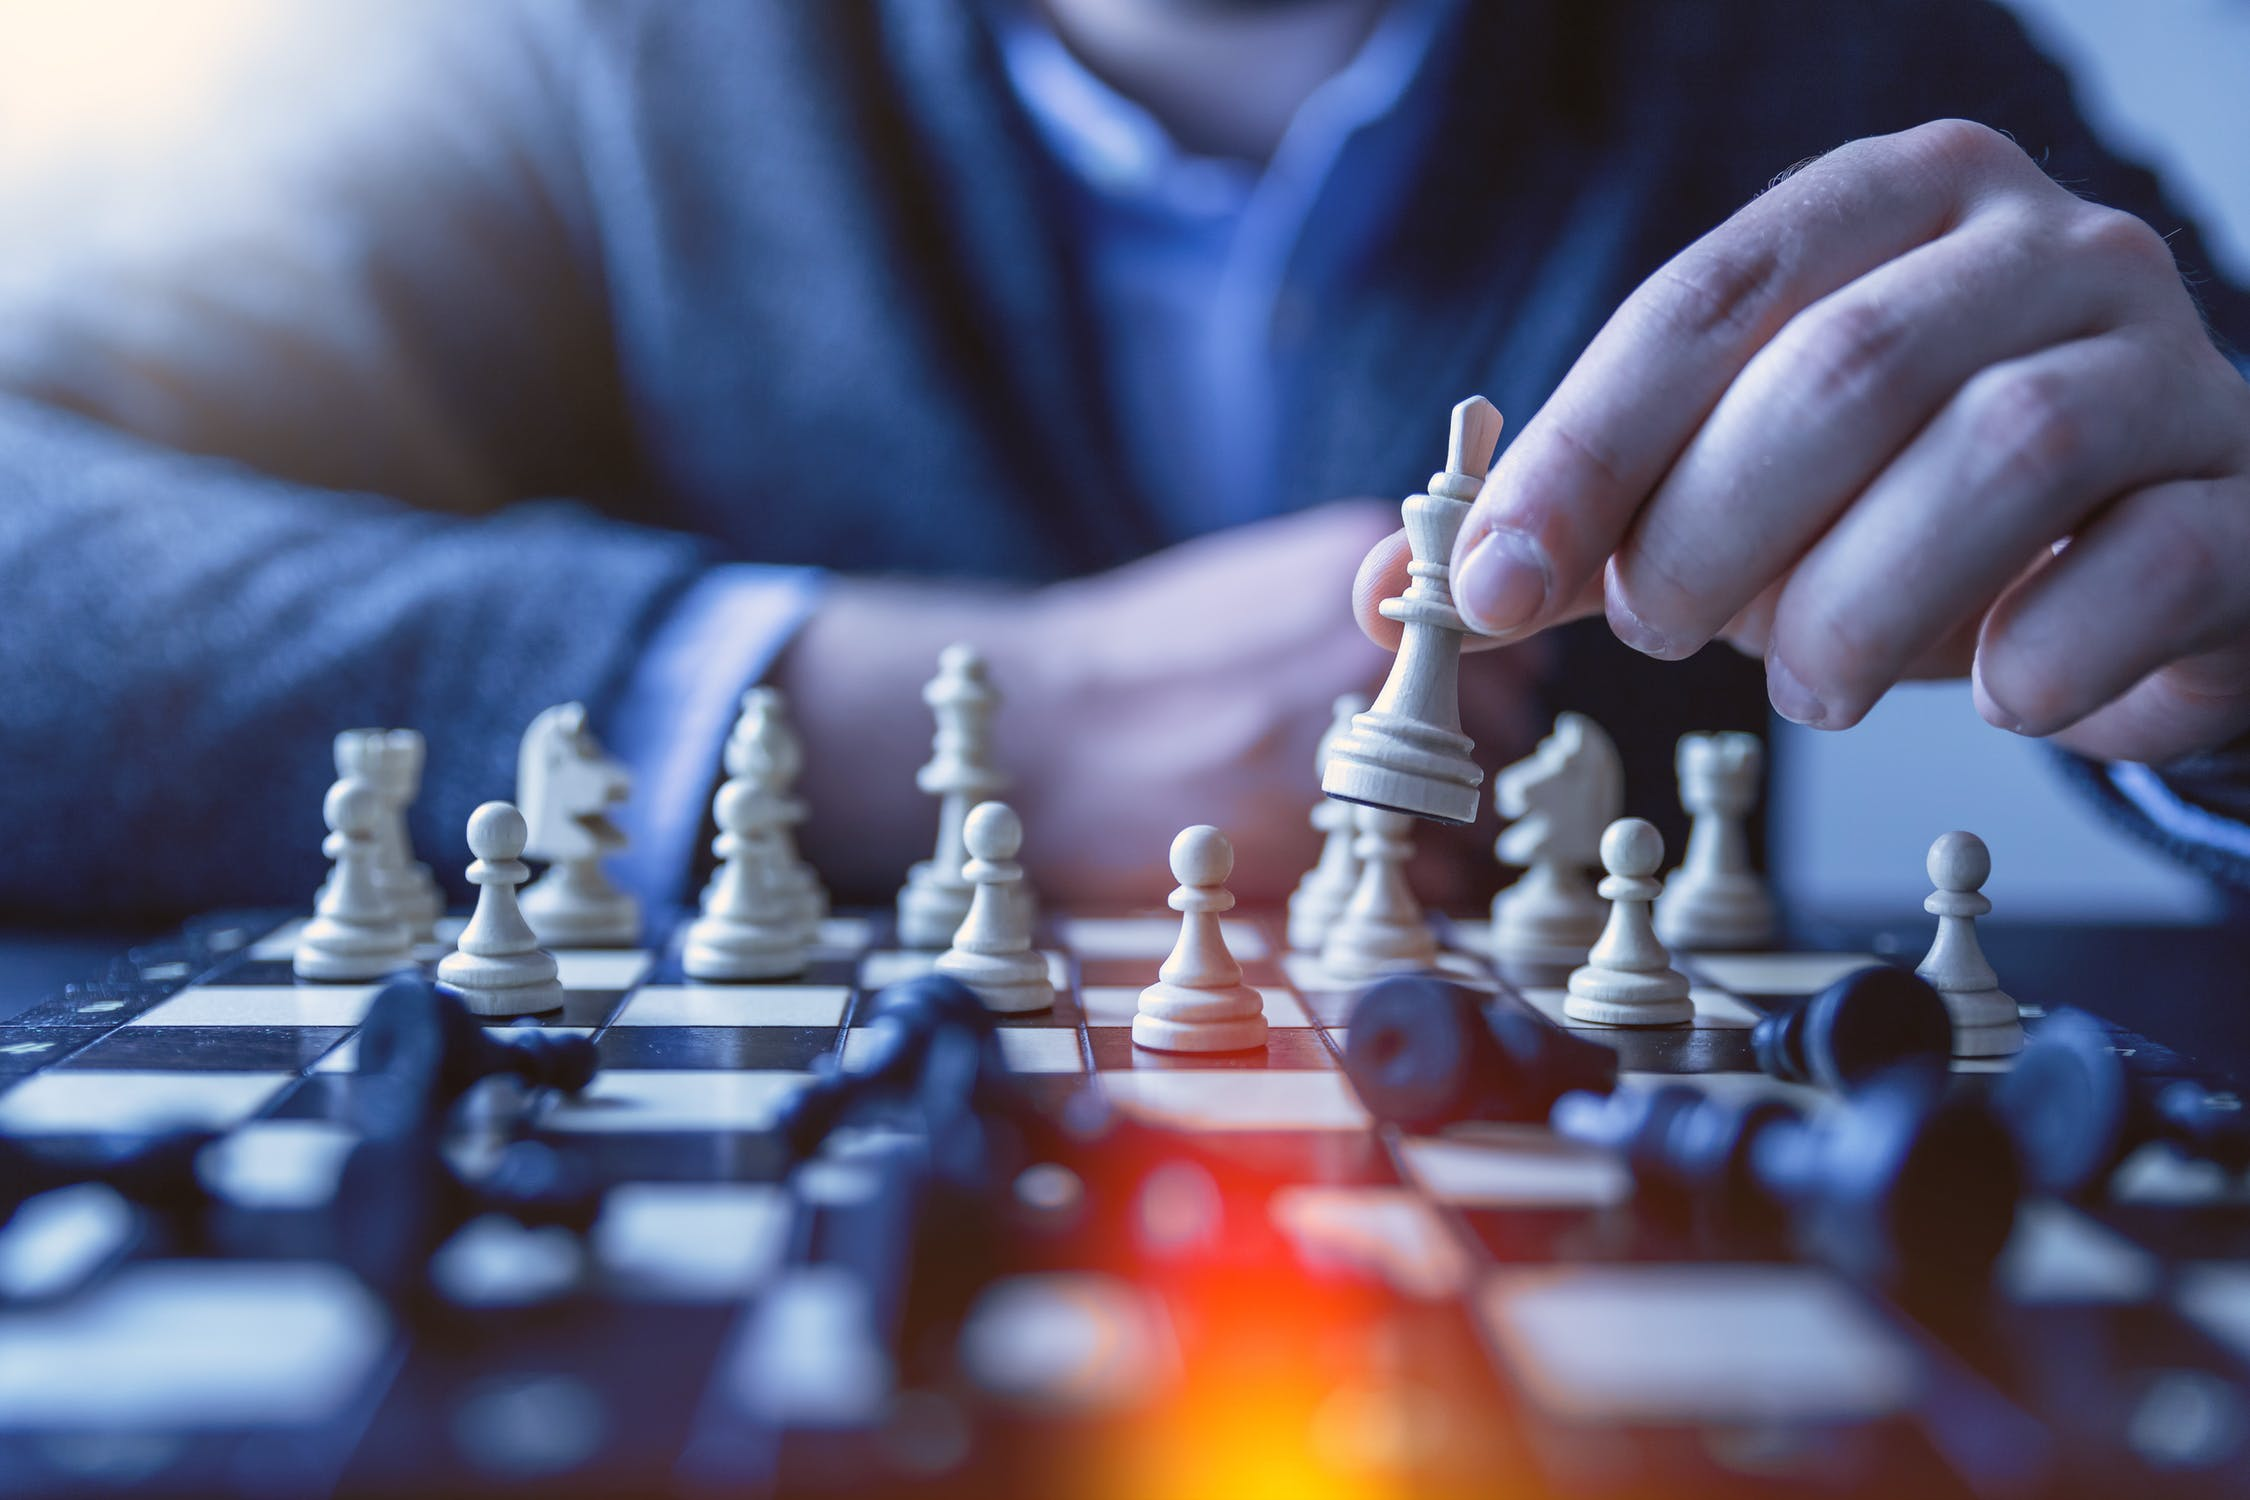 Playing chess is the same as some aspect of tutoring business